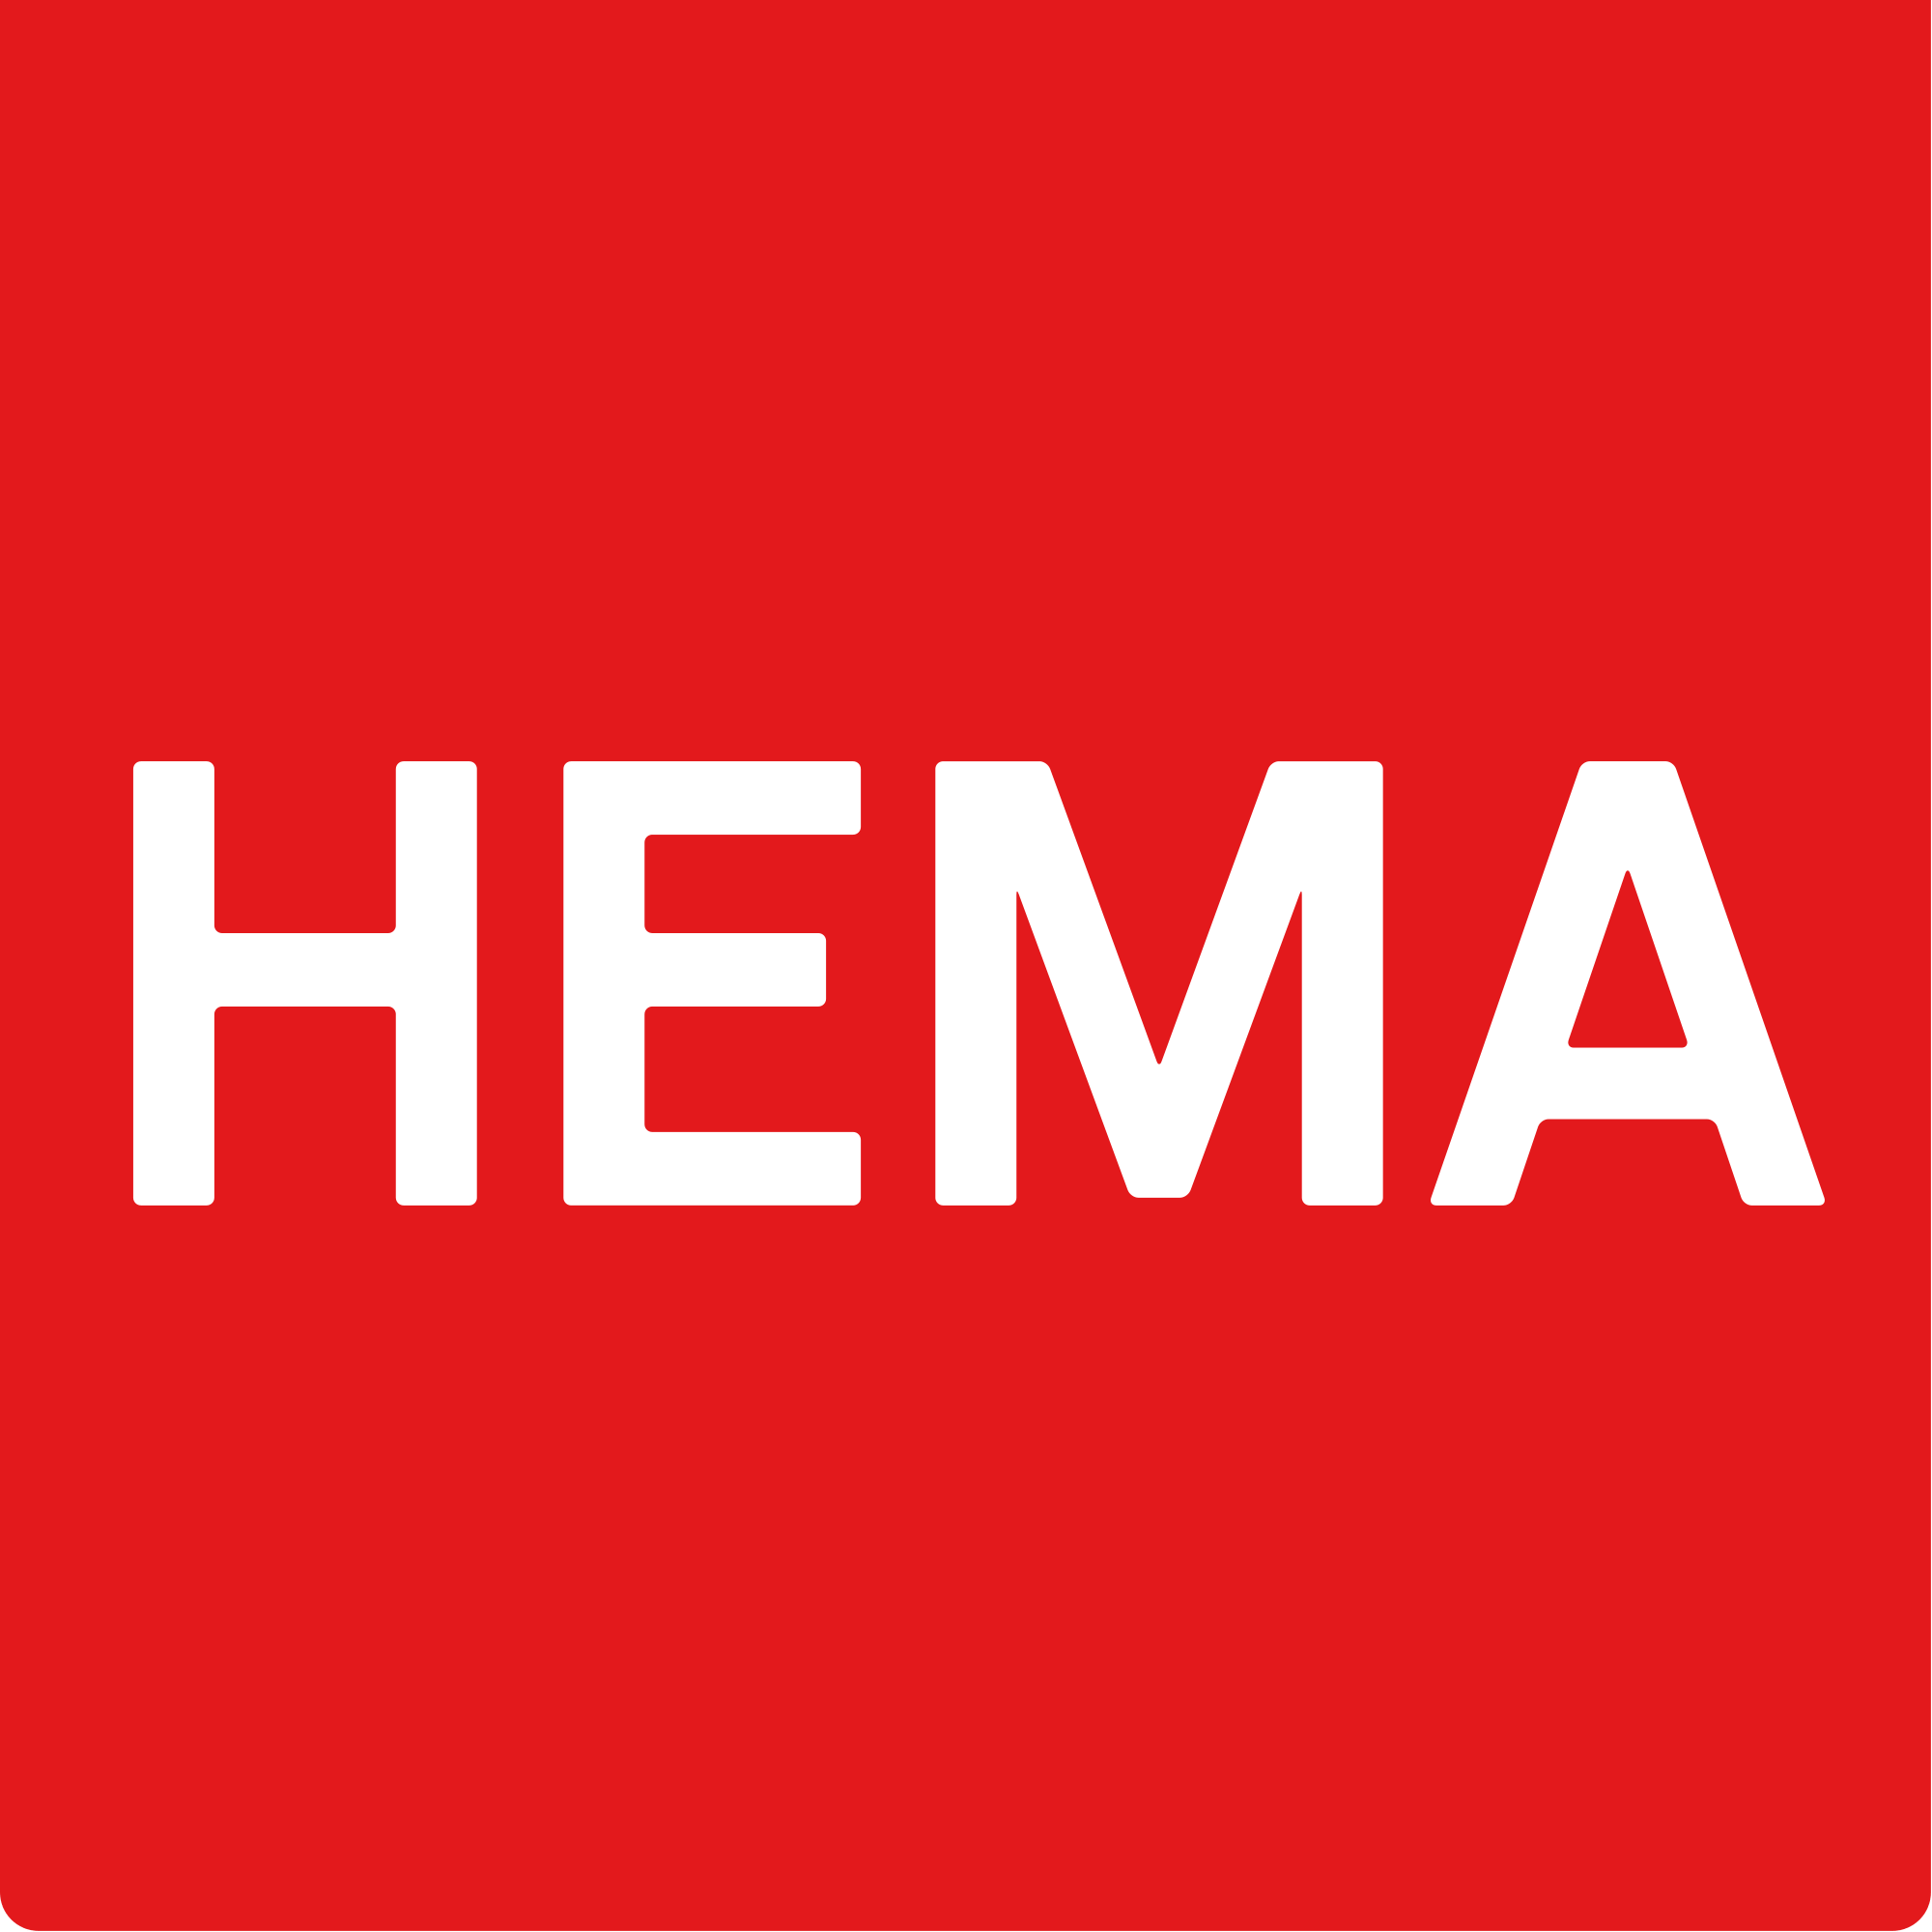 Kartonnen Doos Hema Hema Reviews Lees Klantreviews Over Hema Nl